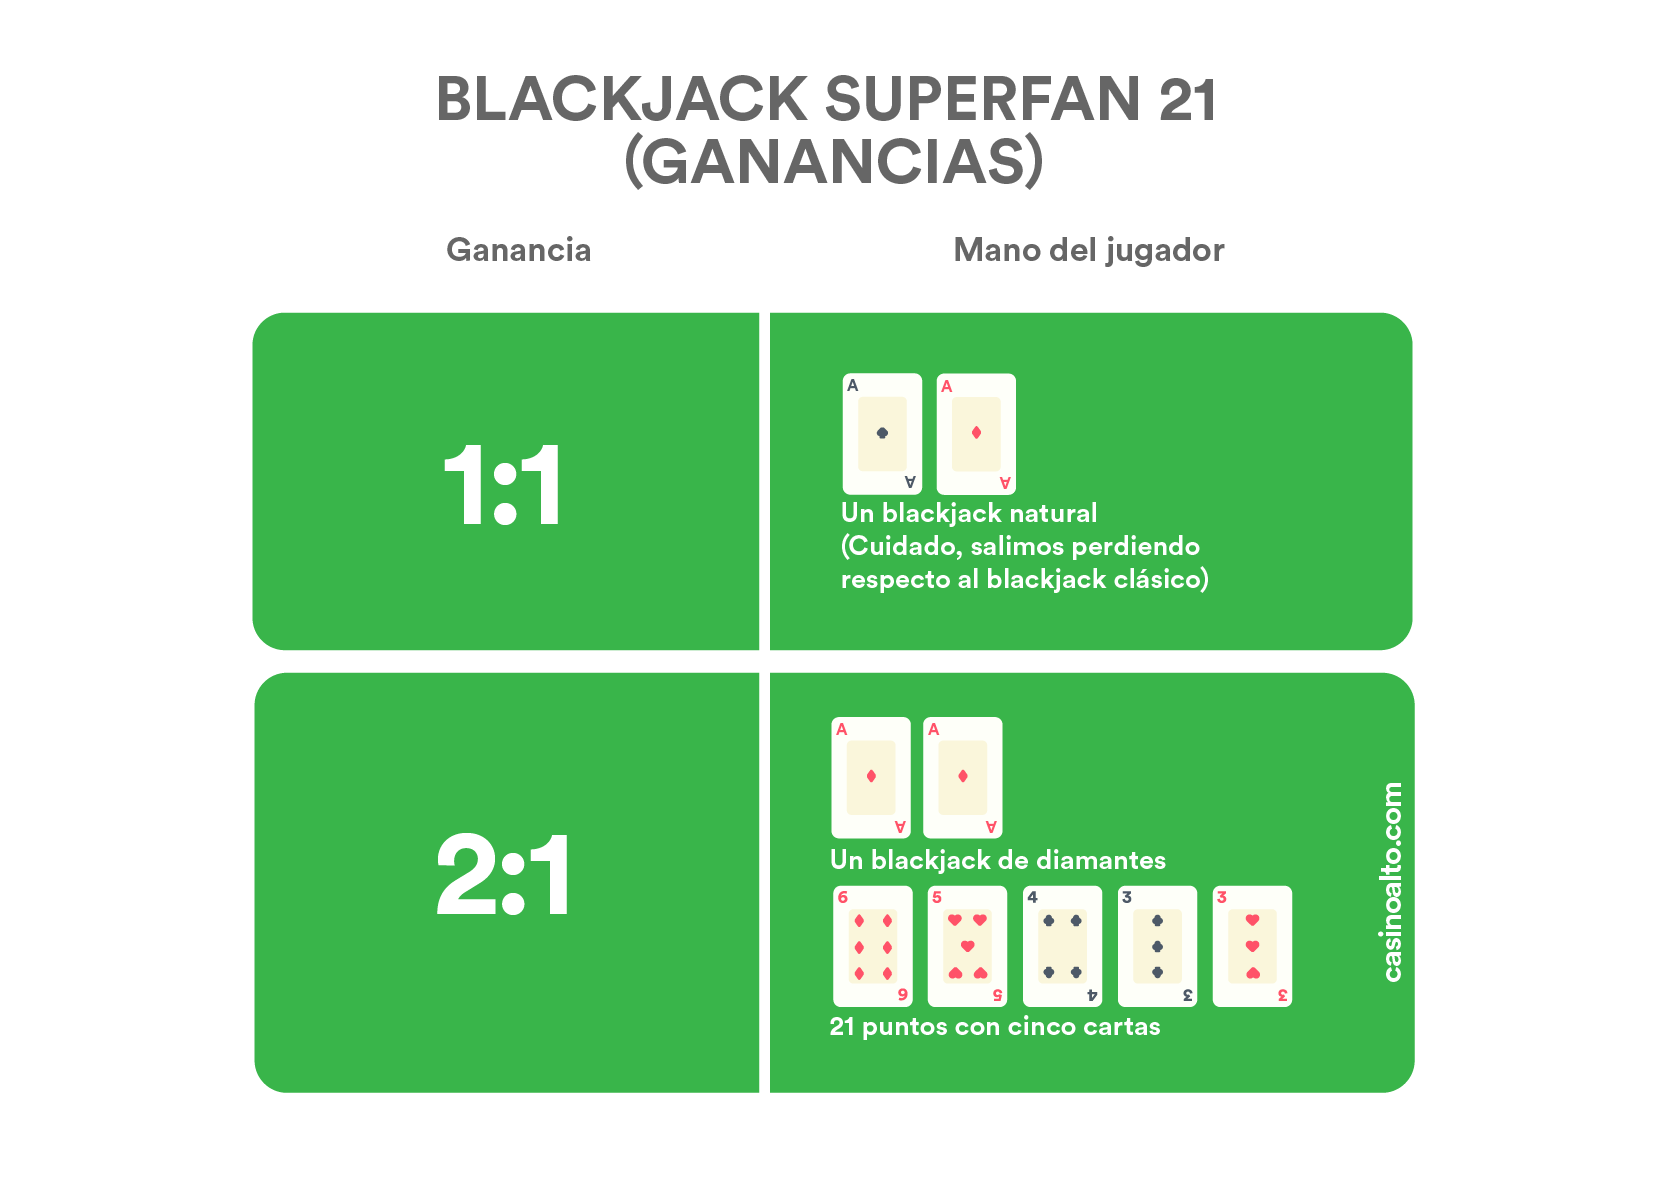 Ganancias blackjack Super Fun 21